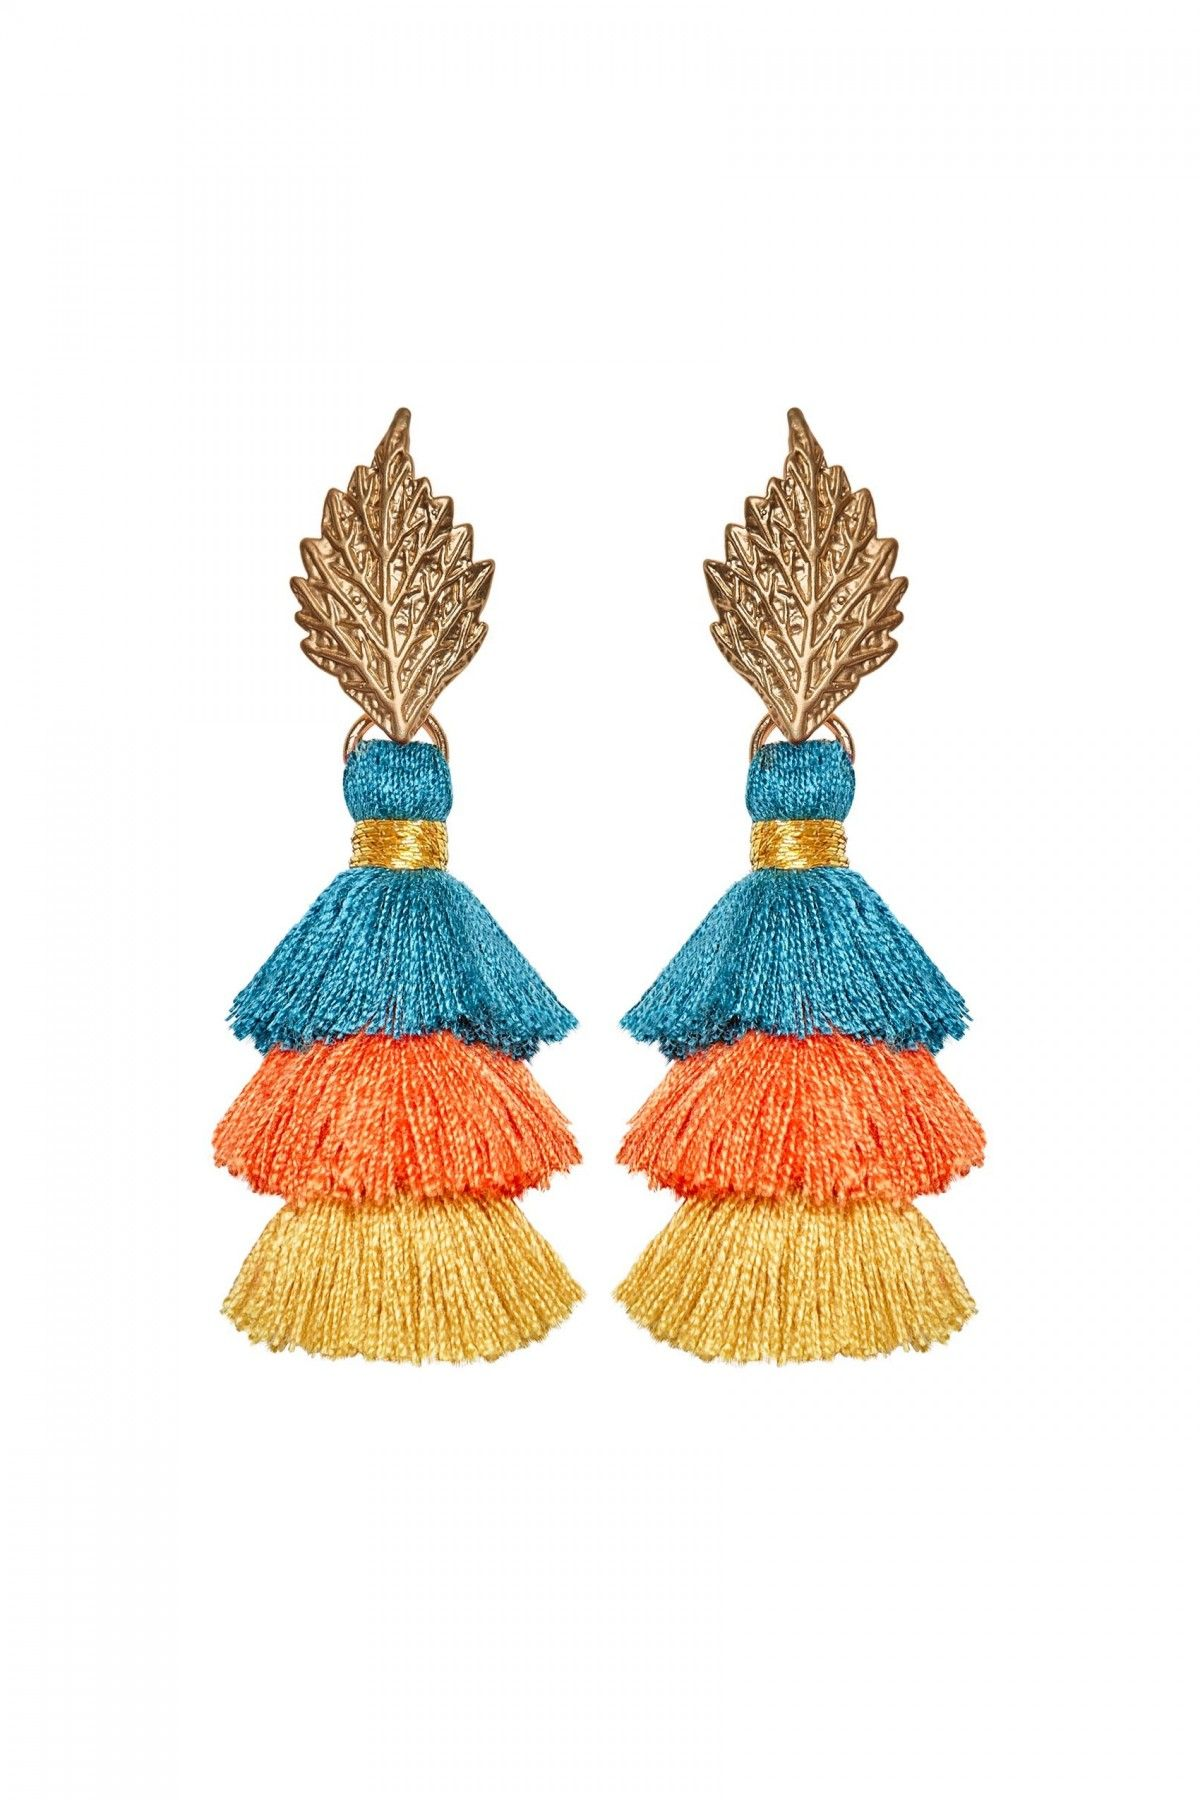 Pom Pom Leaf Summer Earrings